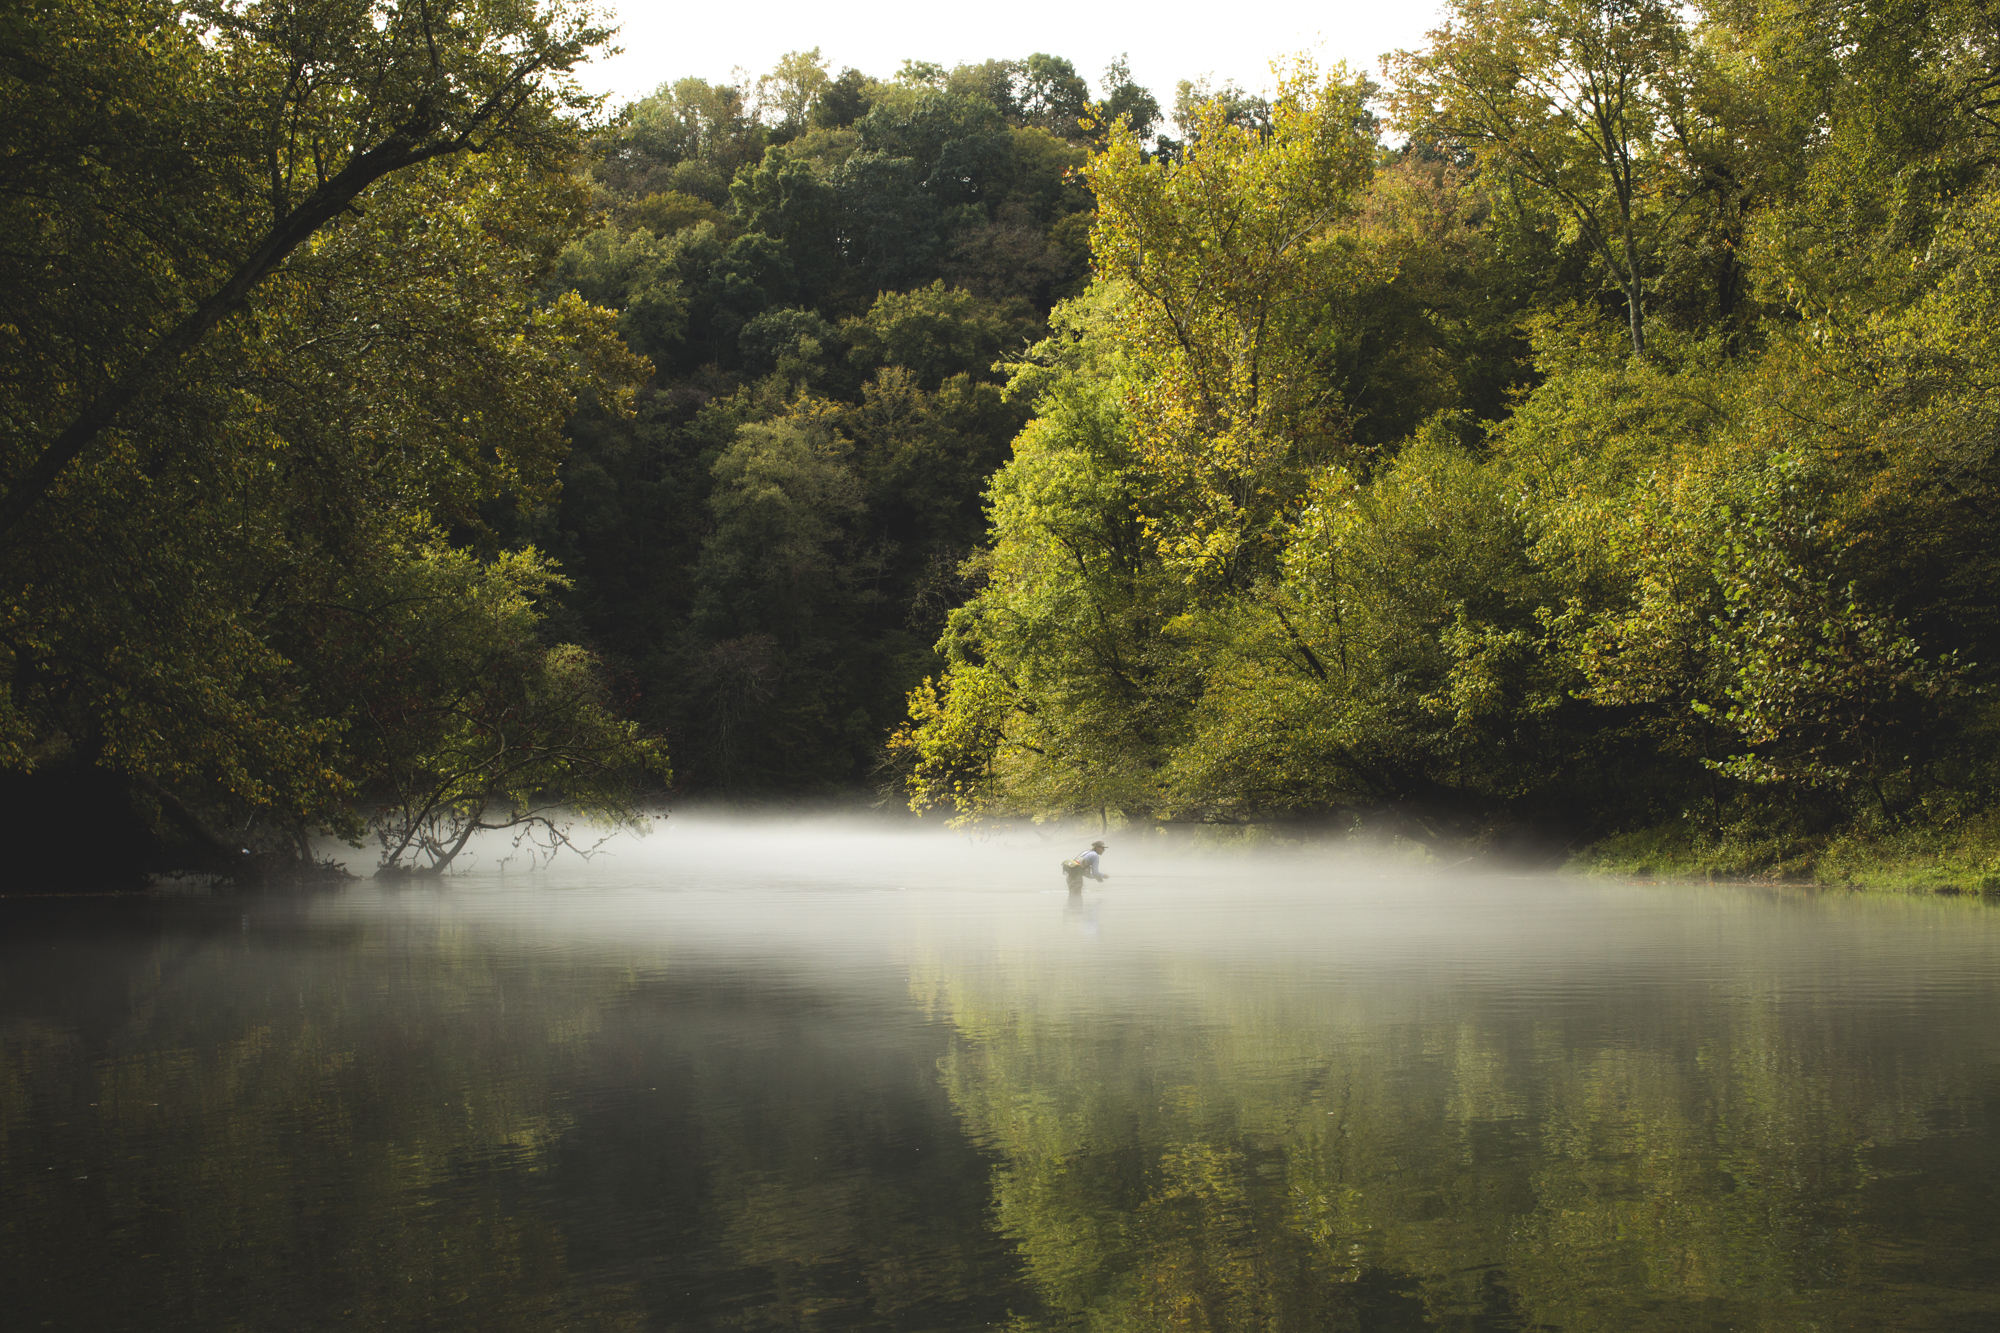 Matt Shaw, at it again, capturing another Tennessee morning moment in this eerily beautiful image.